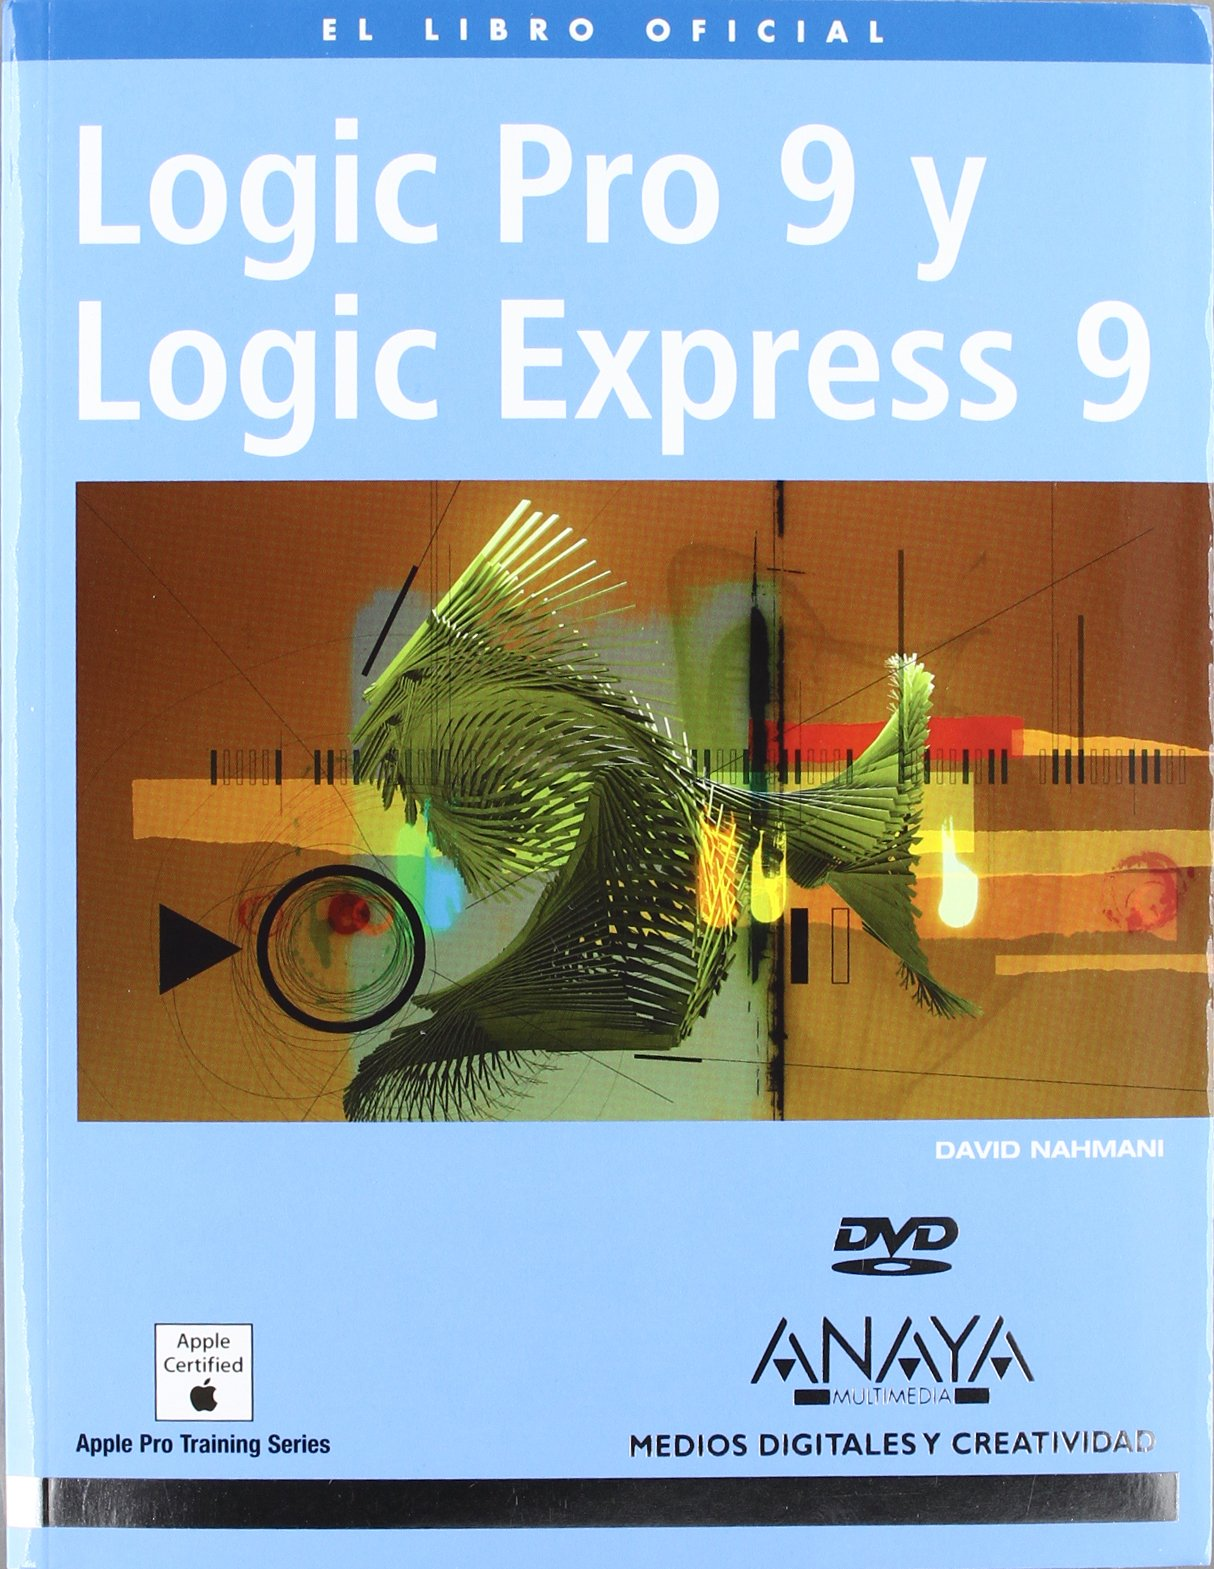 Logic Pro 9 y Logic Express 9 (Spanish Edition): David Nahmani, Natalia Caballero Collado: 9788441527287: Amazon.com: Books